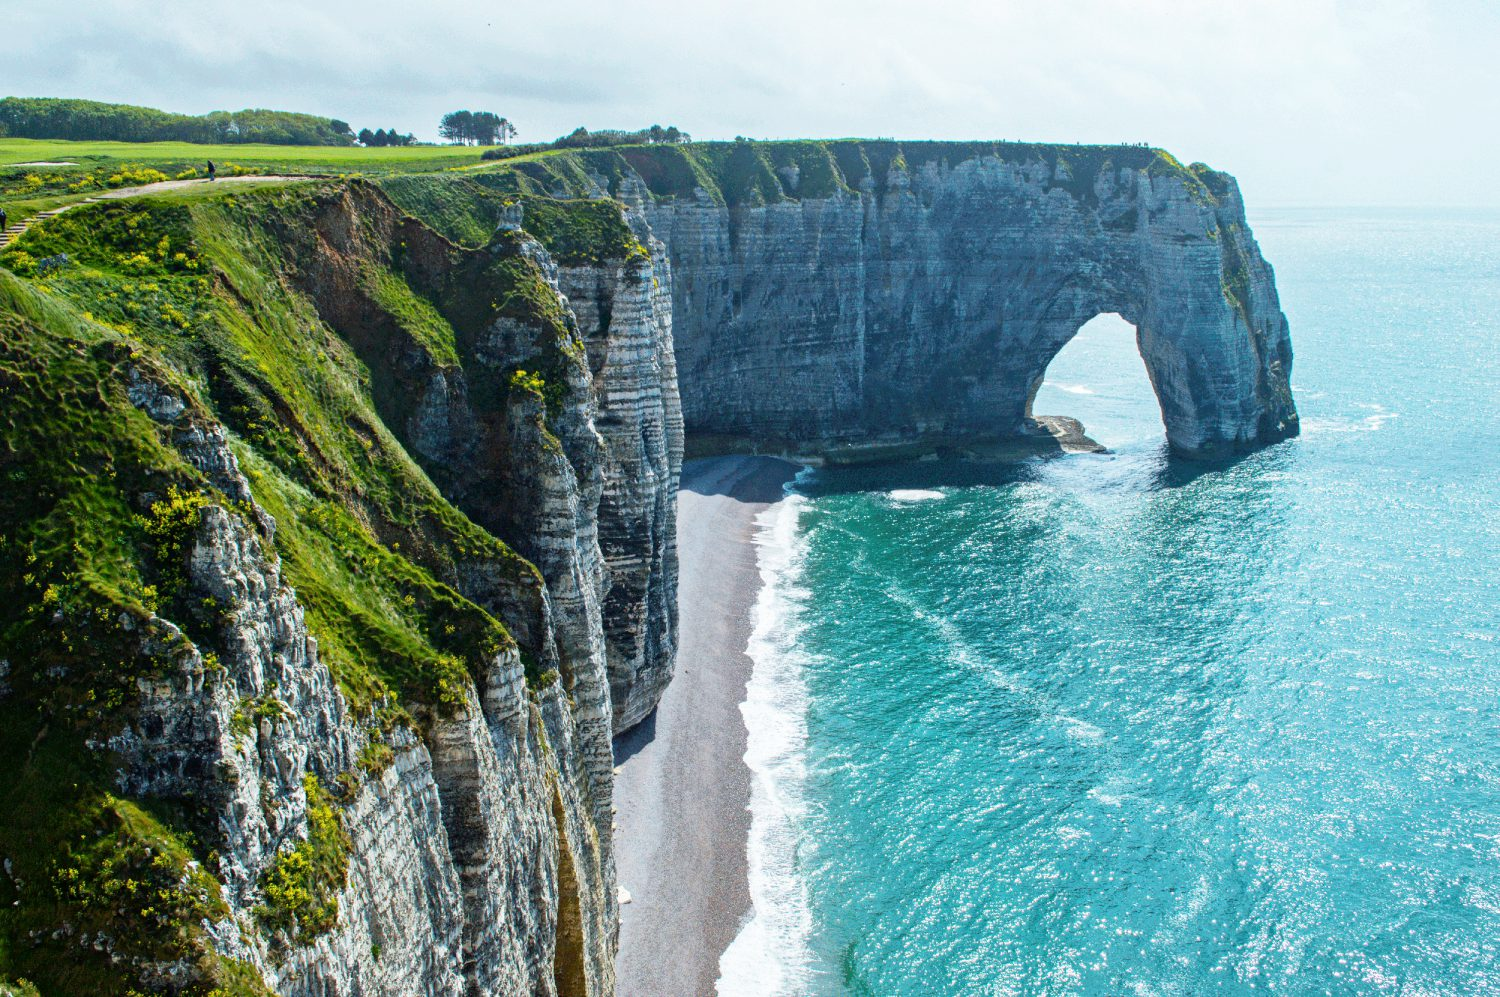 landforms in france image collections